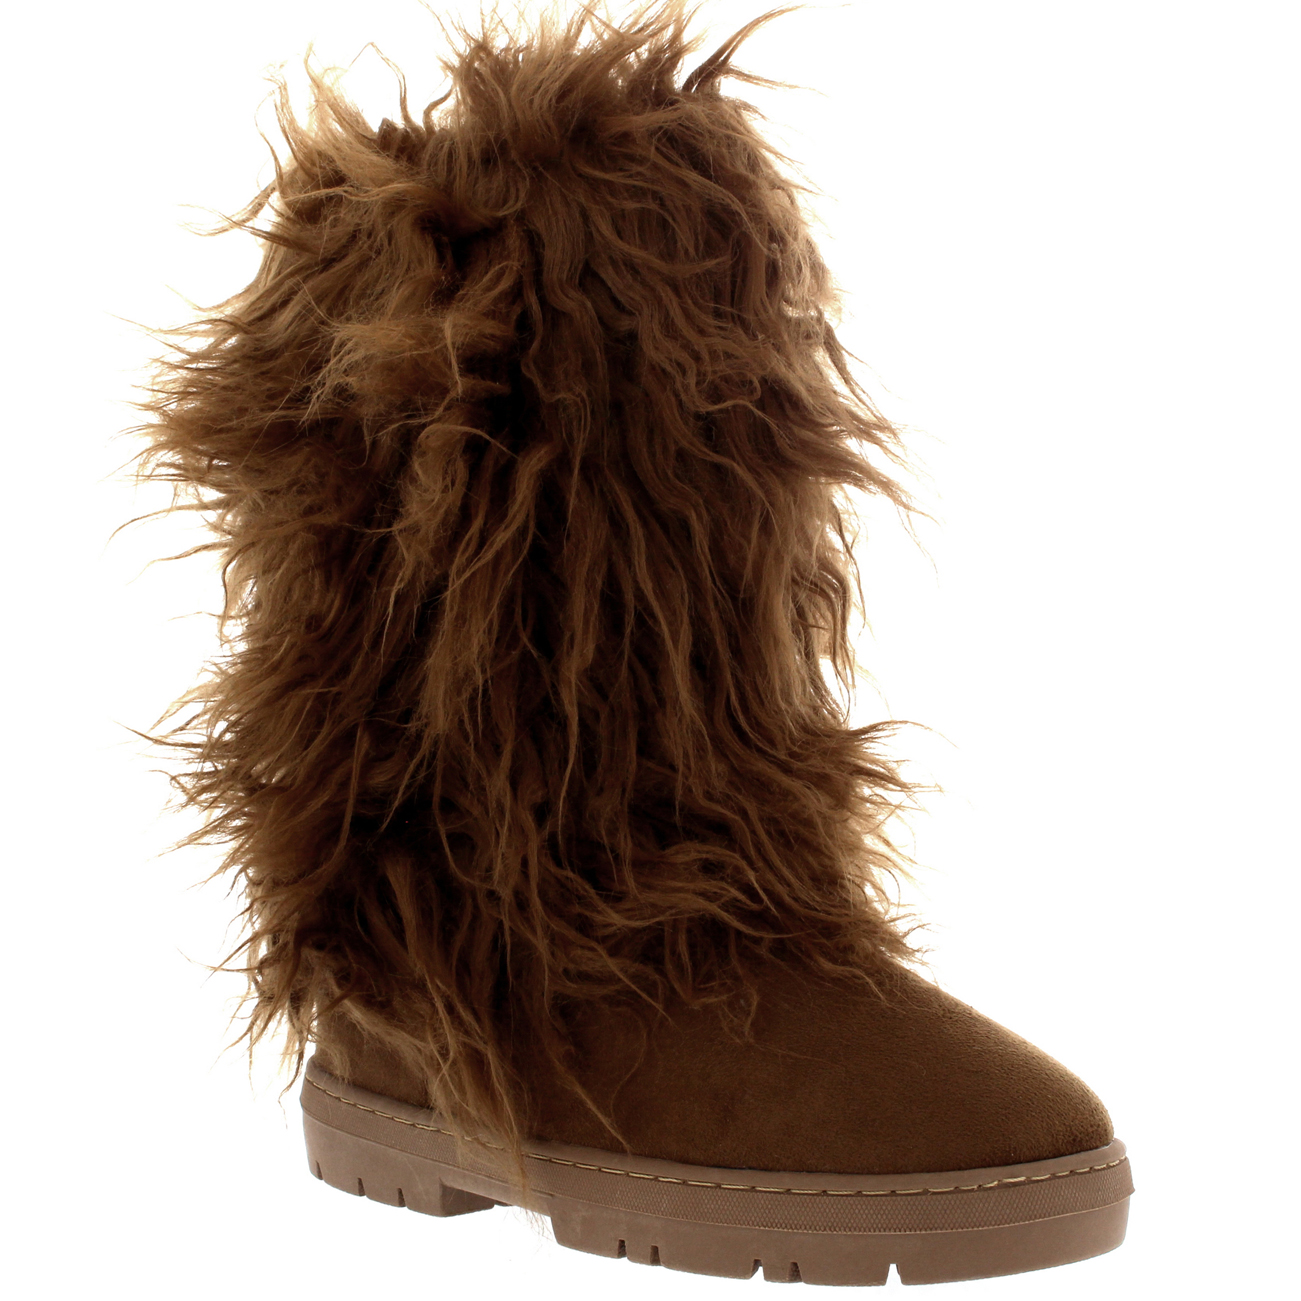 Womens Long Fur Covered Rain Fur Lined Winter Warm Tall Snow Boots ...